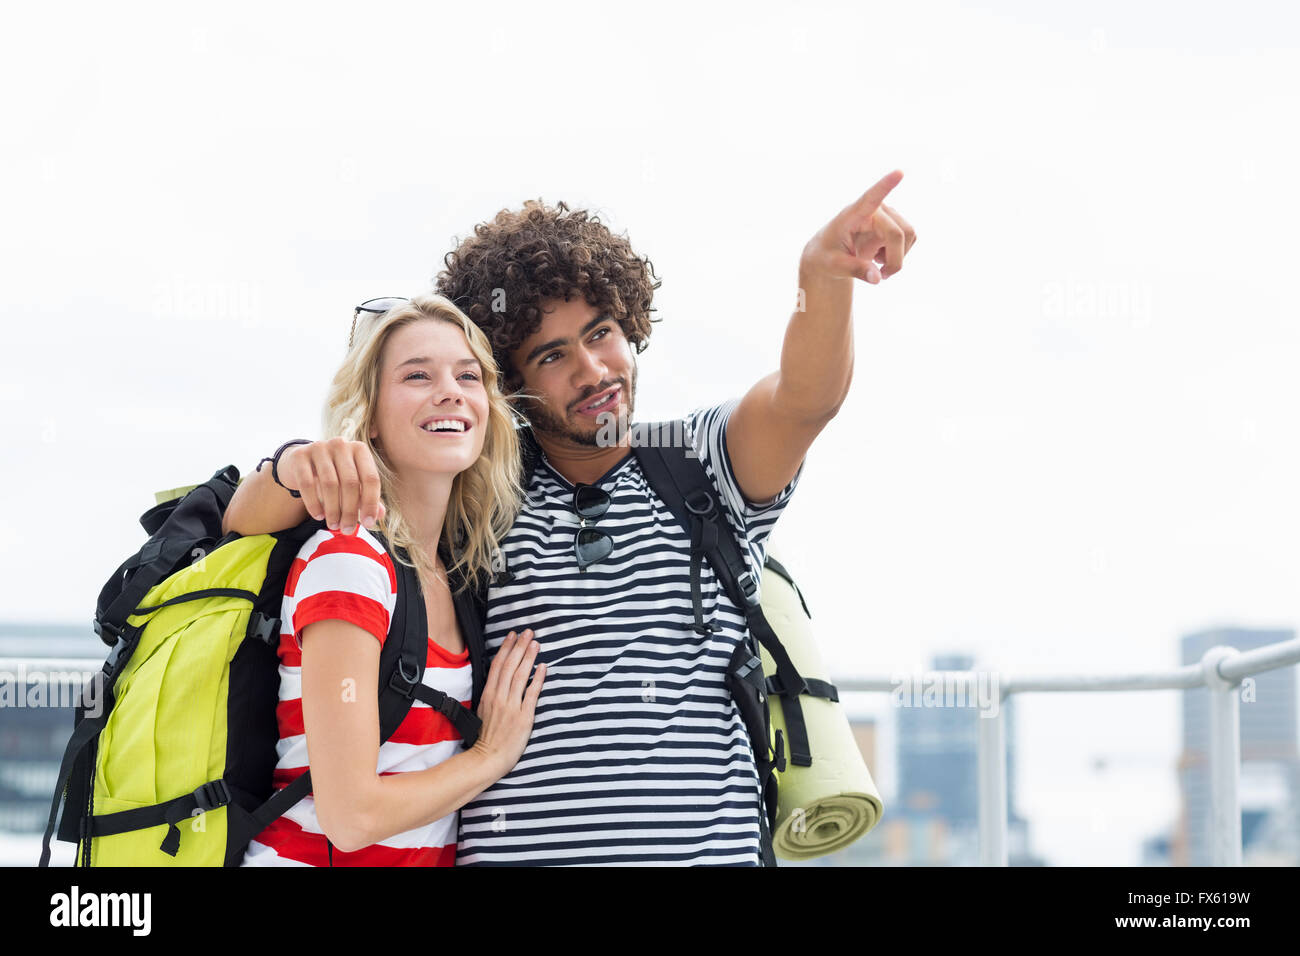 Man standing with woman pointing upwards - Stock Image